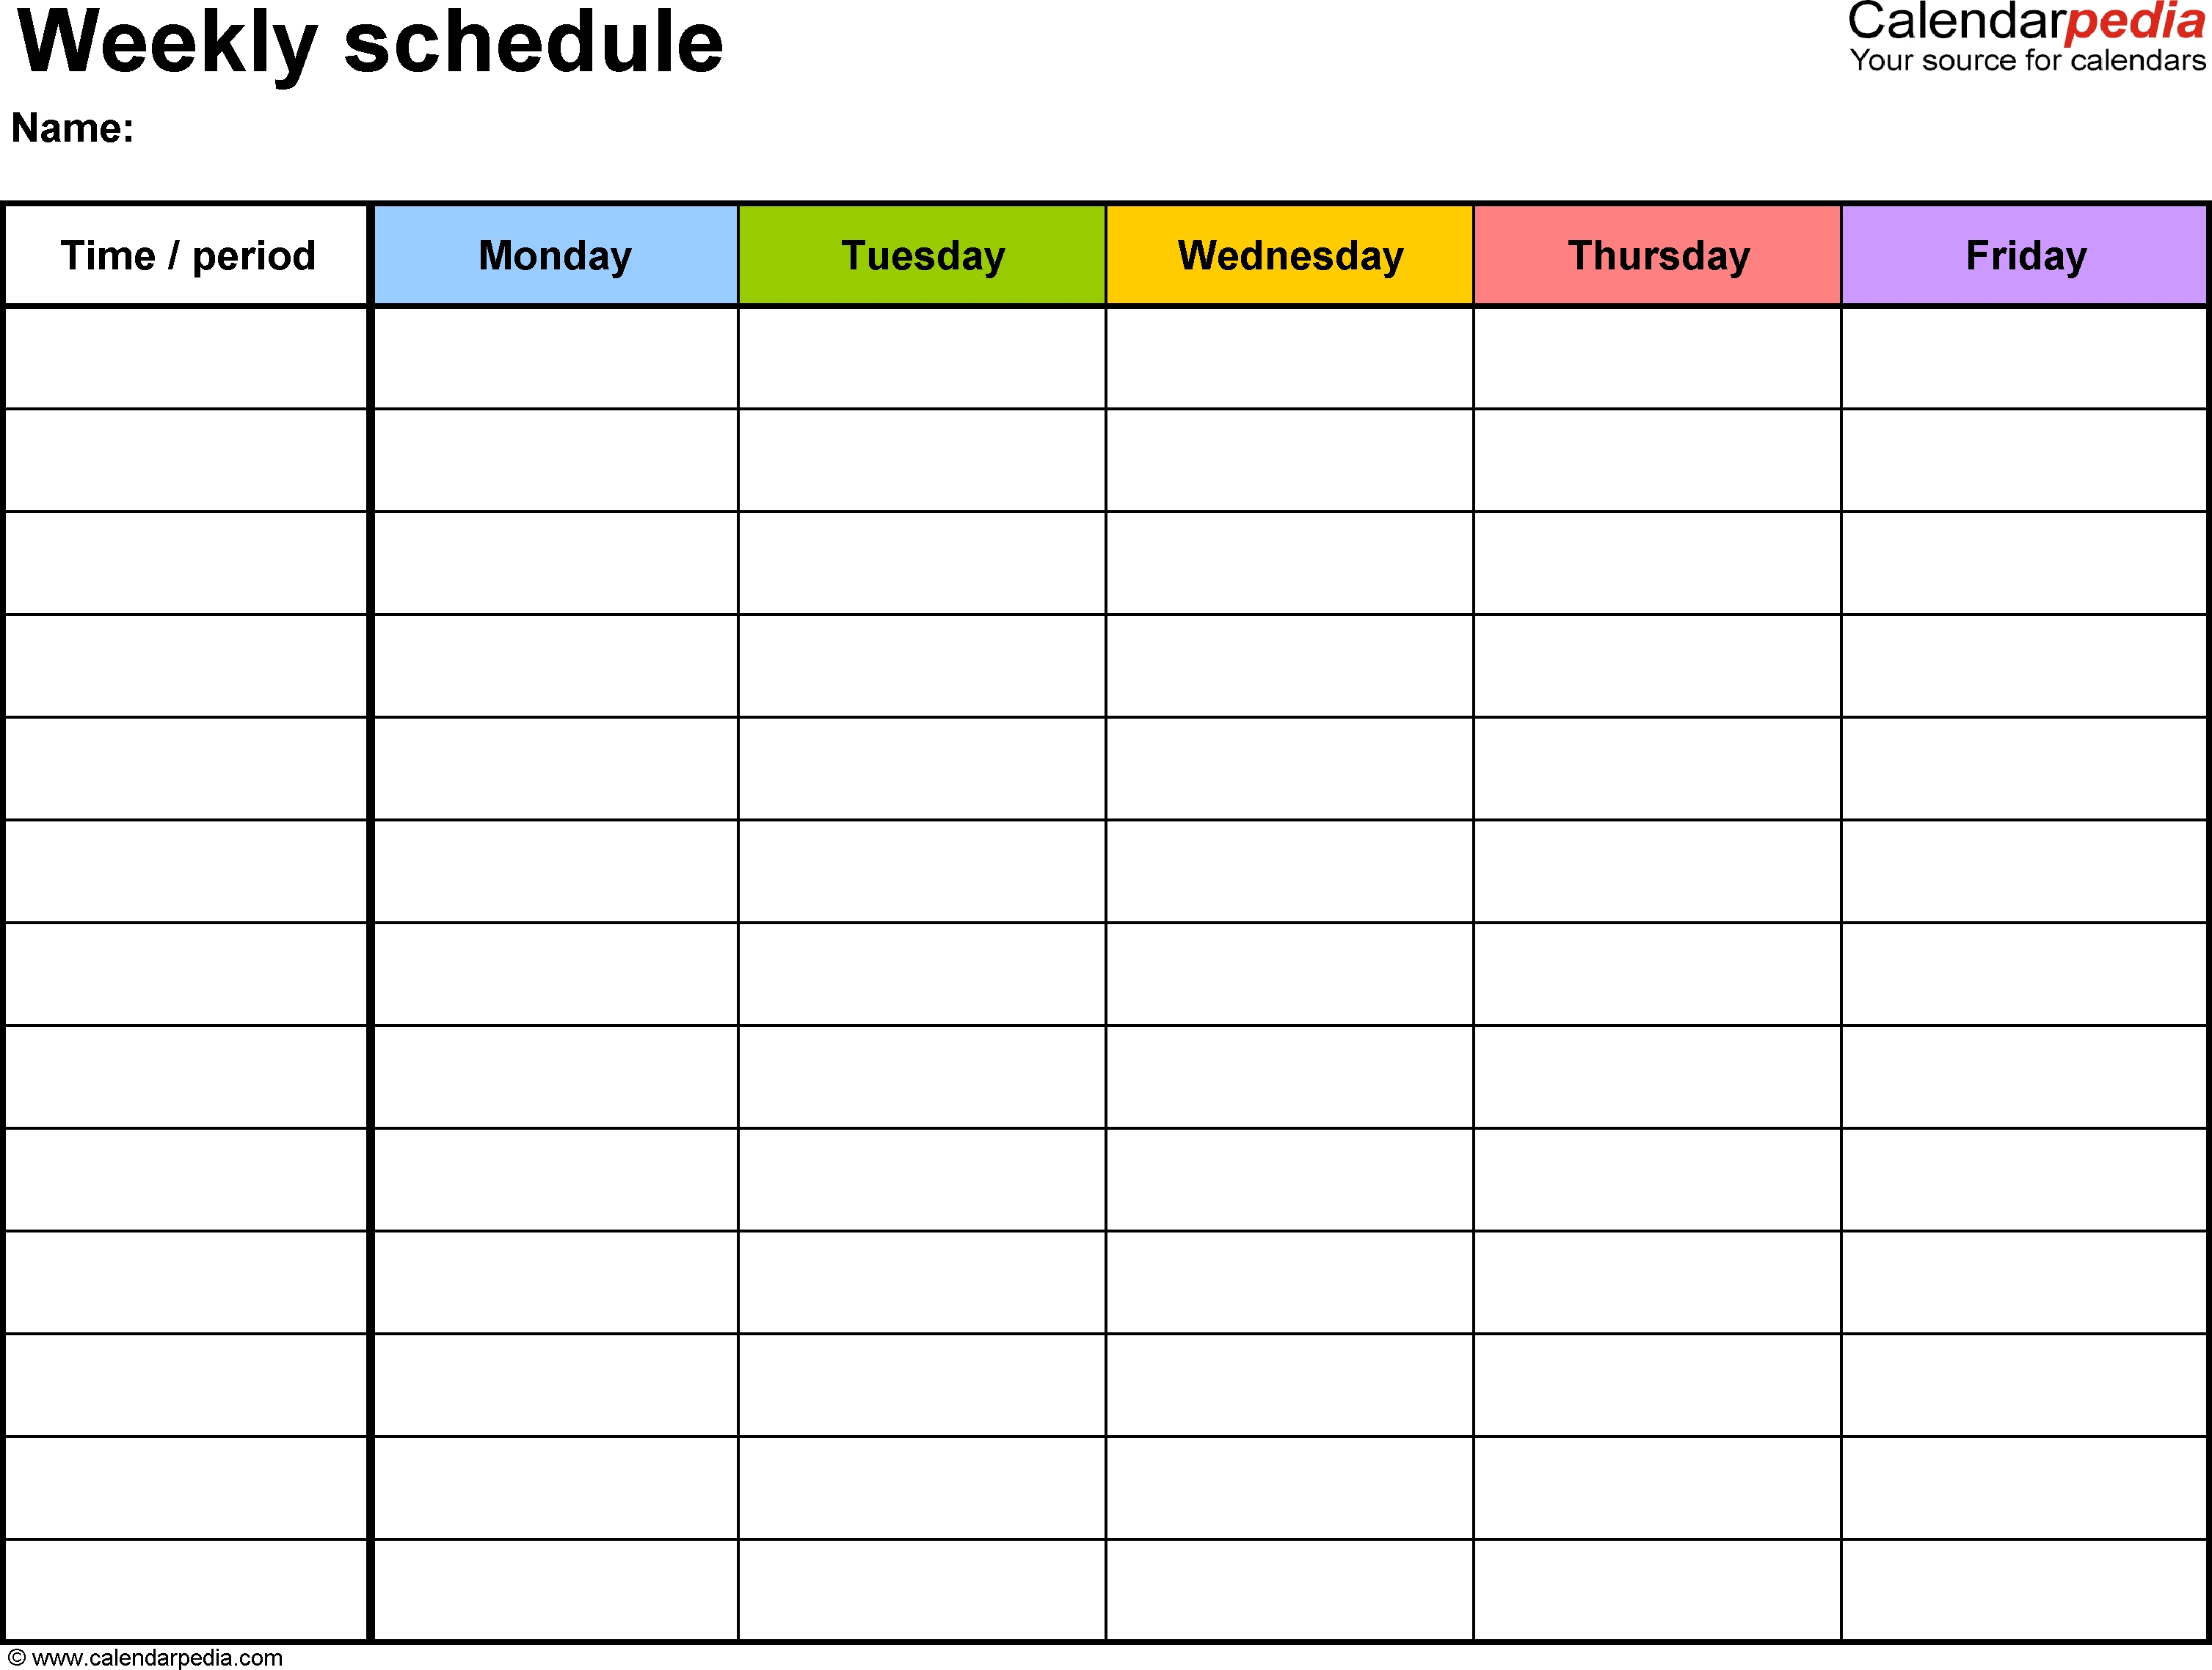 Free Weekly Schedule Templates For Pdf - 18 Templates-Monthly Calendar With No Dates